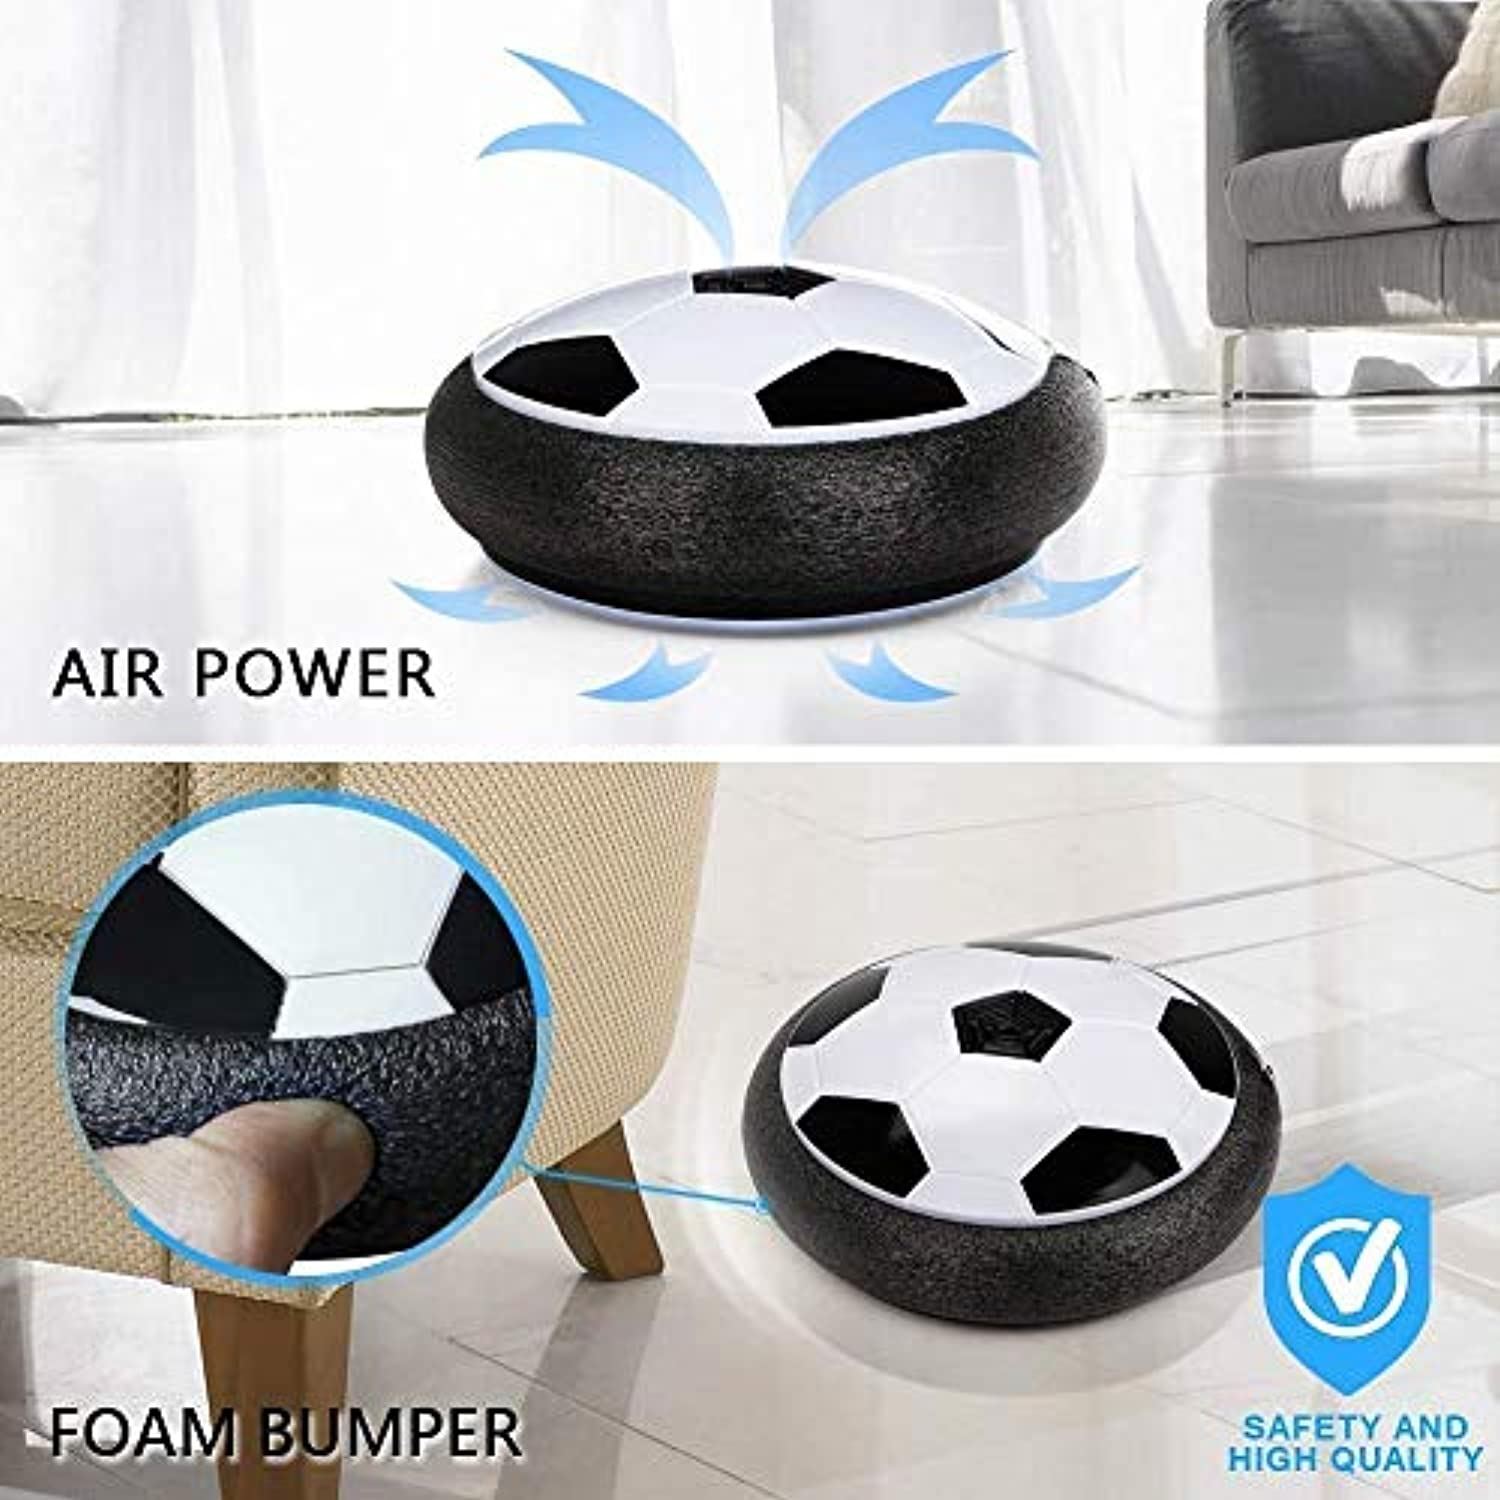 Kids Toys Air Power Soccer Ball Games Indoor Football Gifts - smrt-life.com